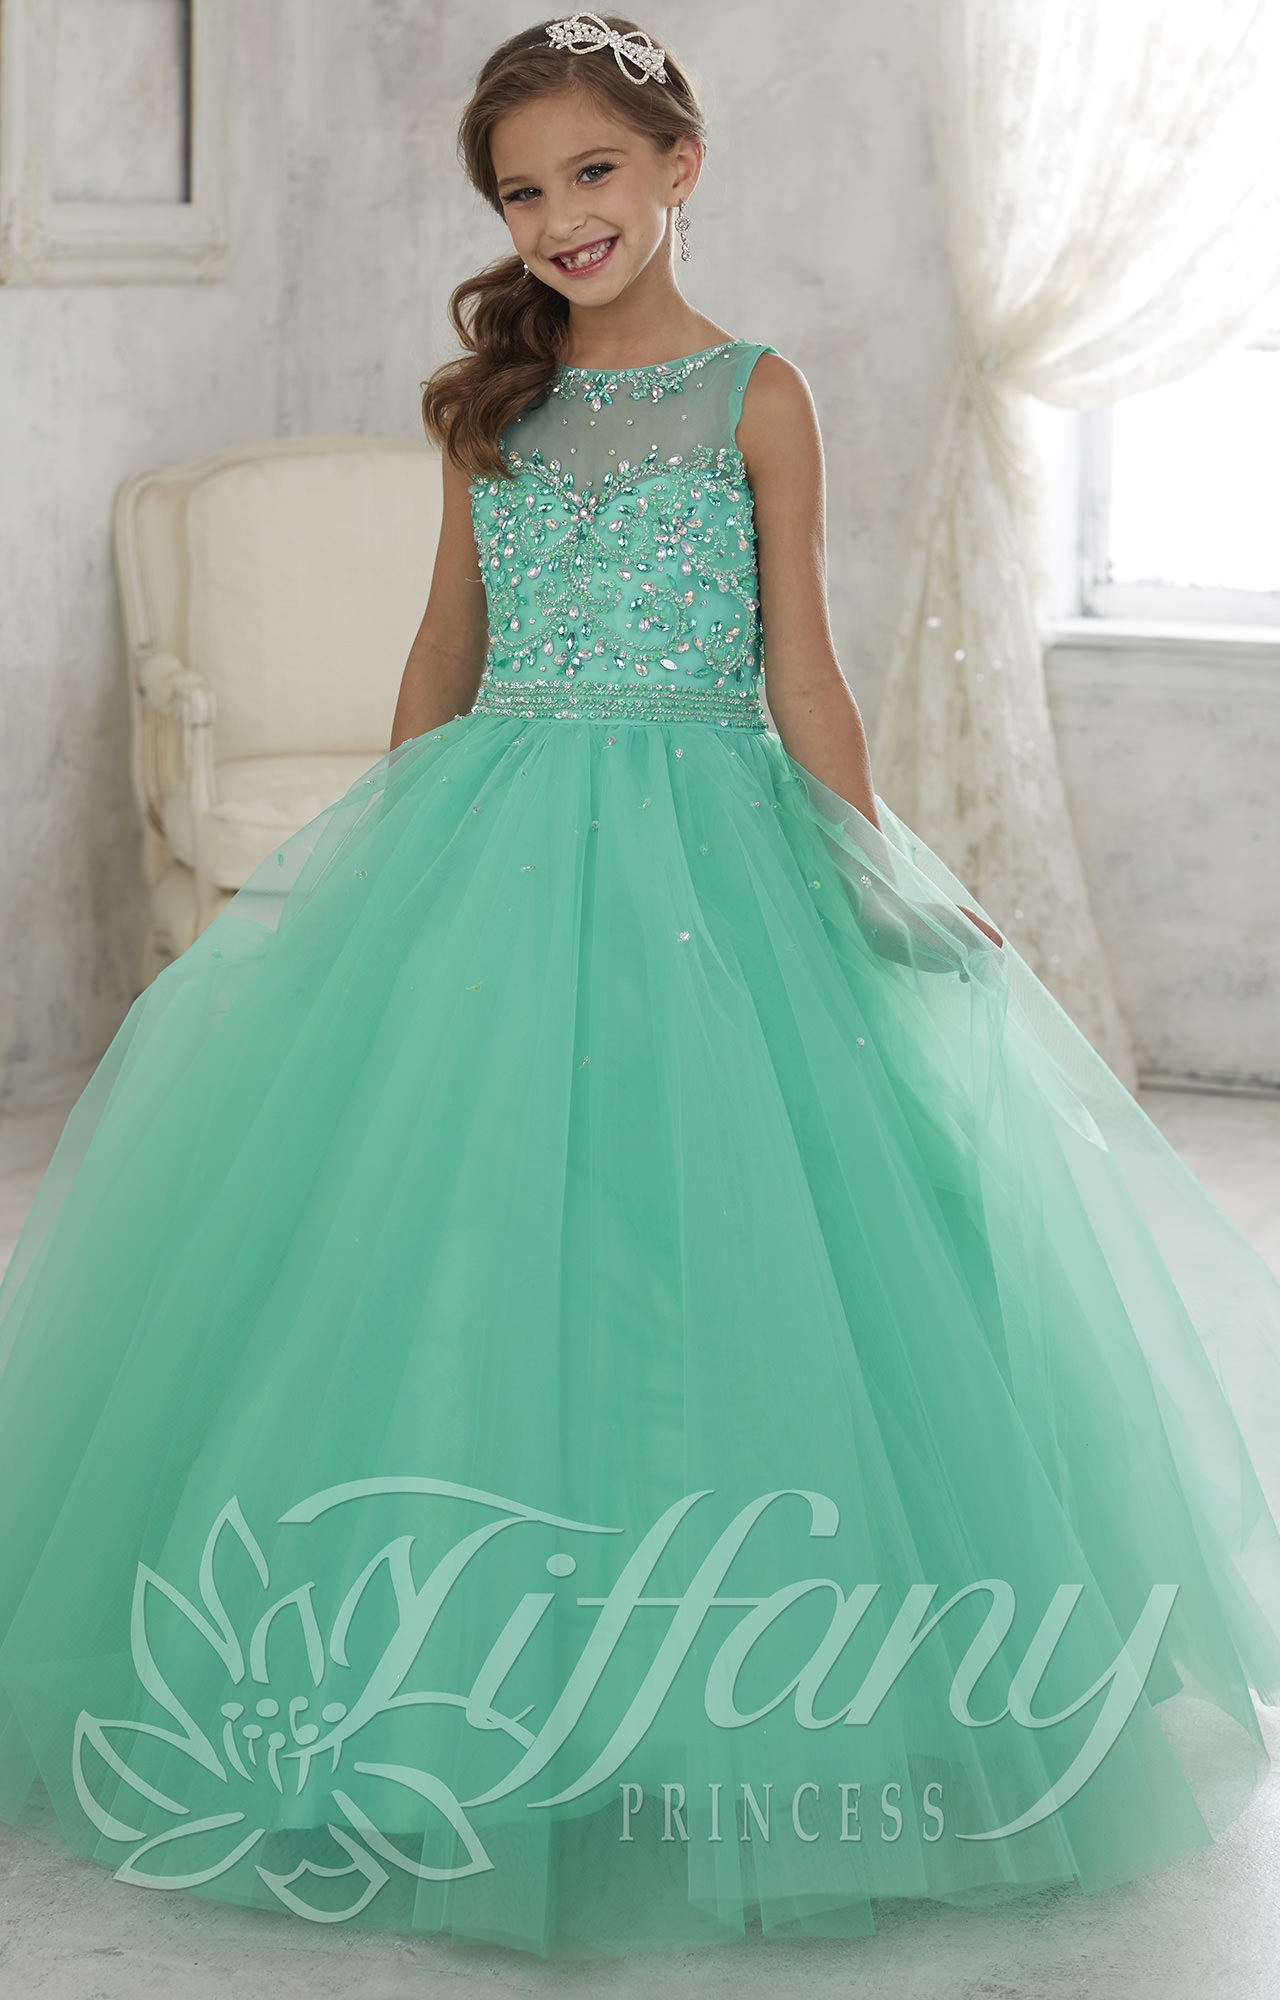 Tiffany Princess 13442 - Ballgown Dreams Dress Prom Dress